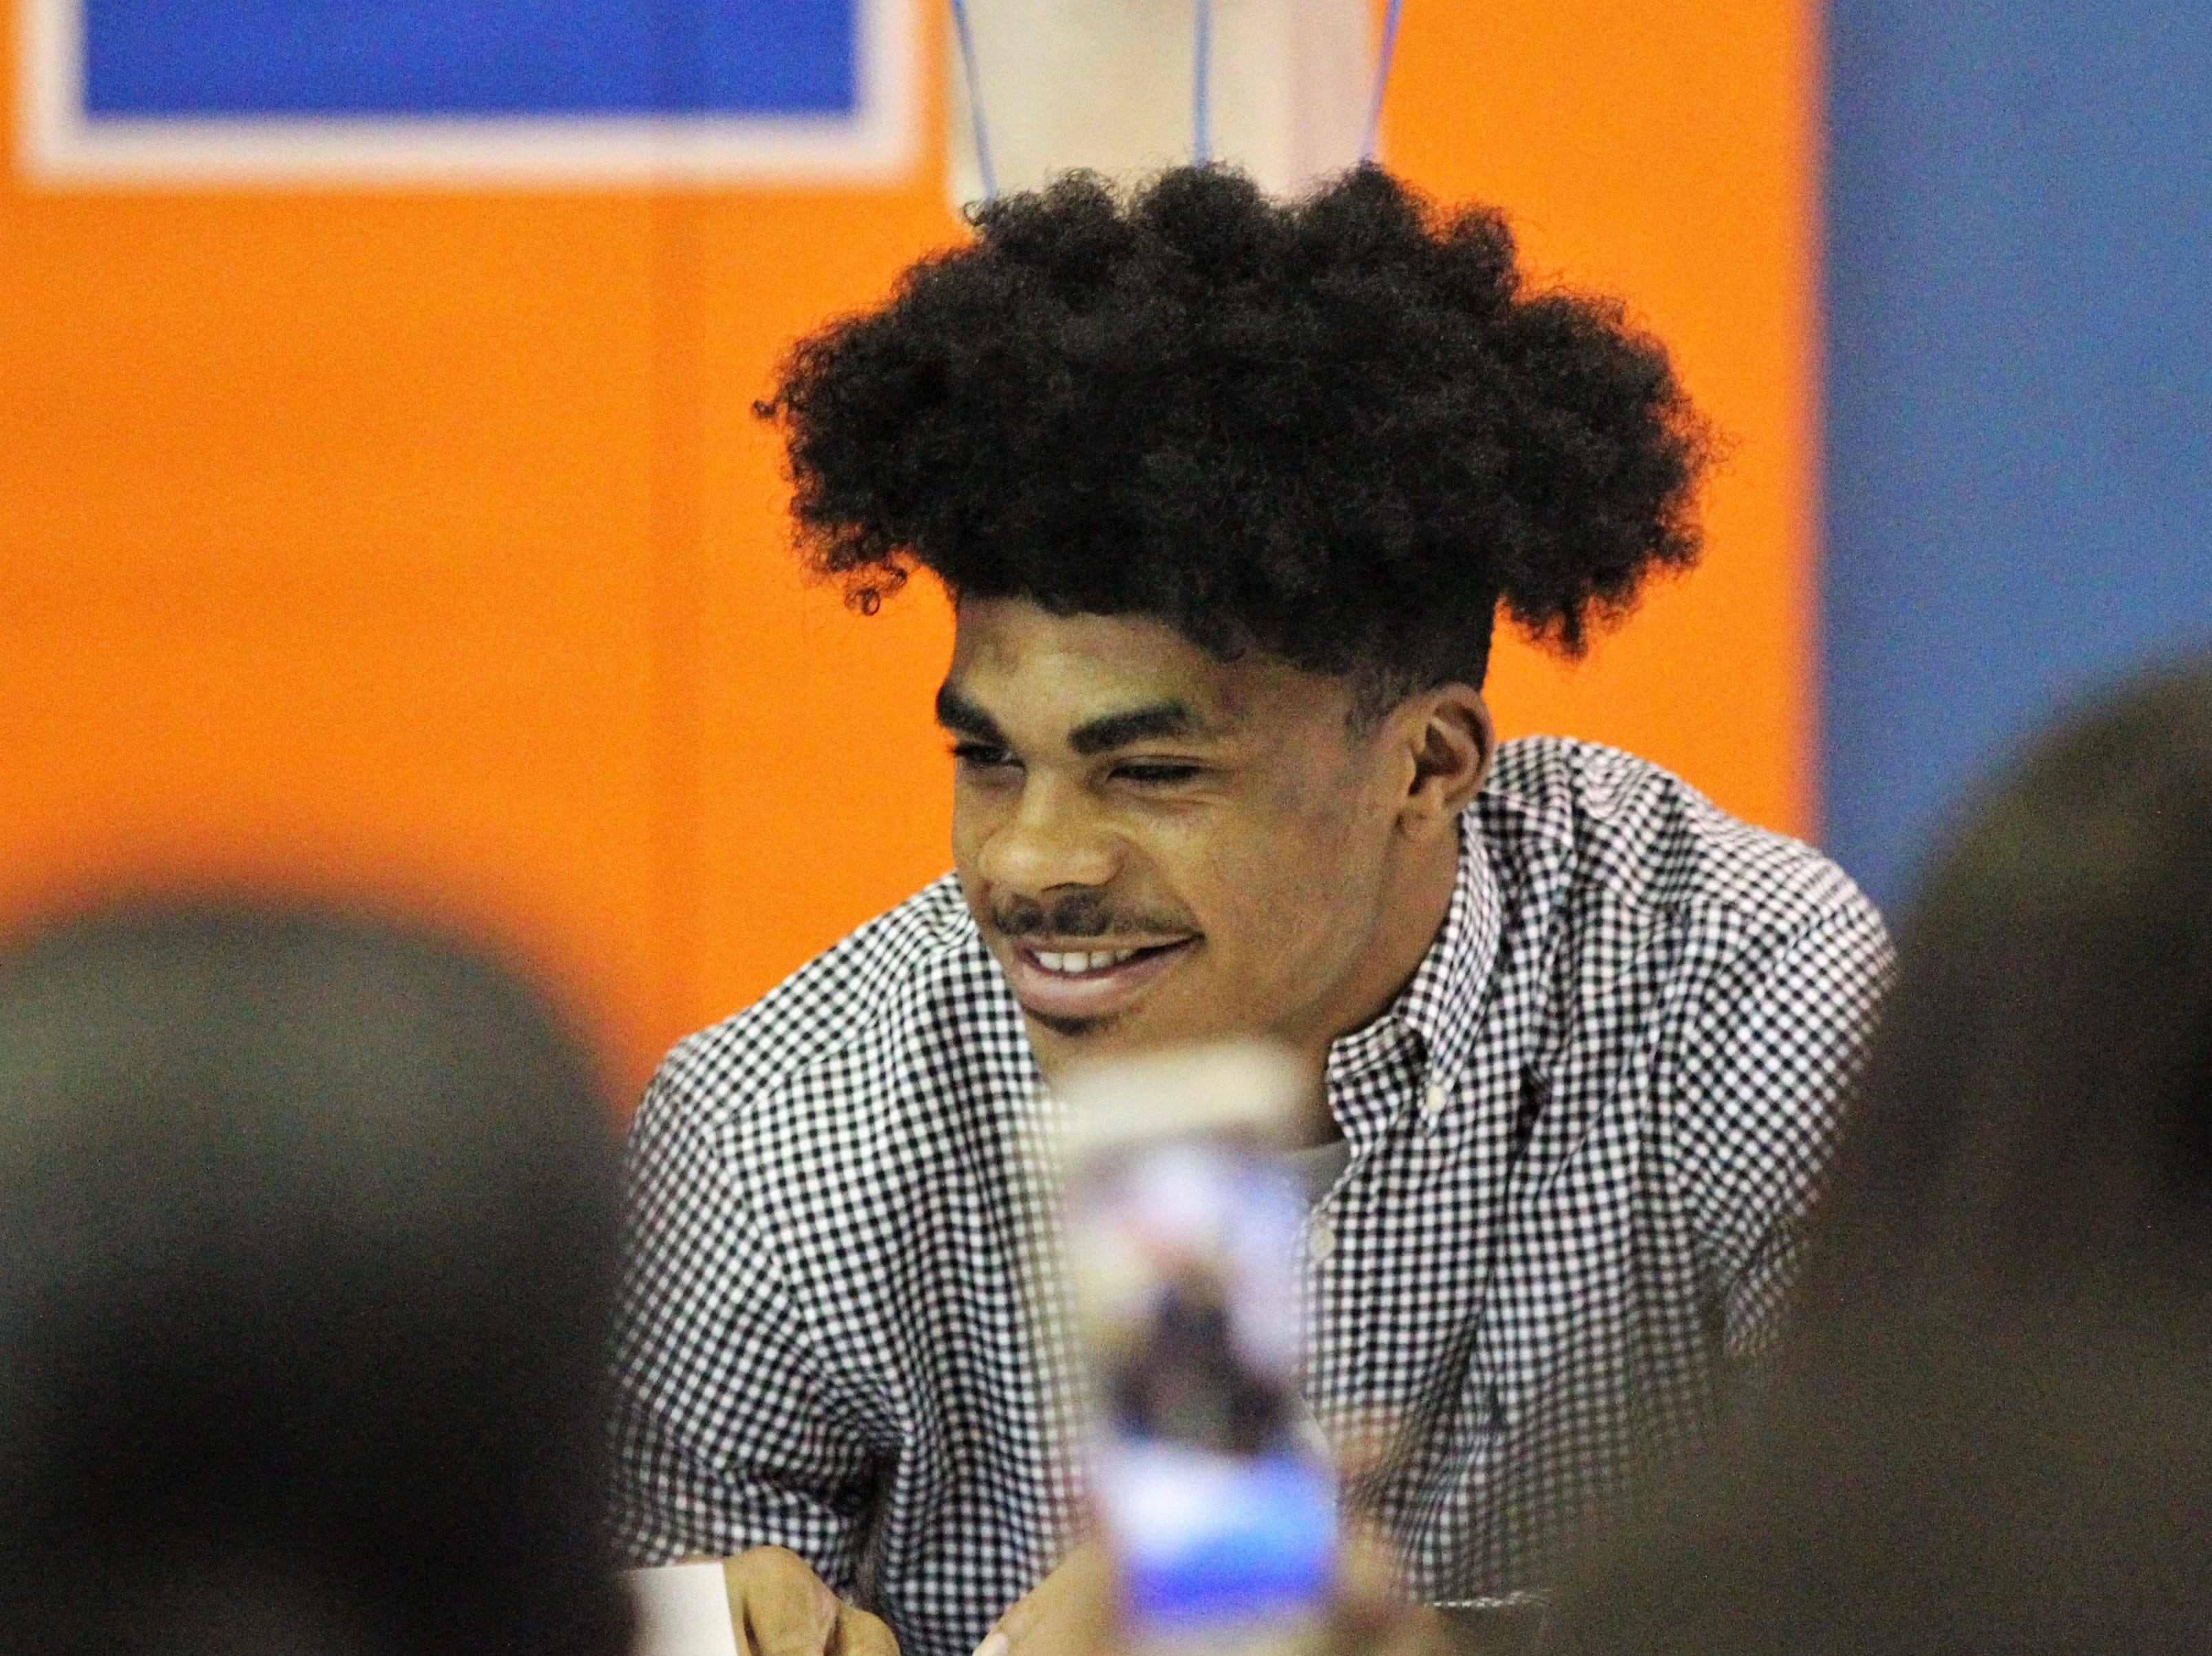 Jefferson County receiver Armon Williams signed with Fullerton College during Jefferson County's signing day ceremony on Feb. 13, 2019.